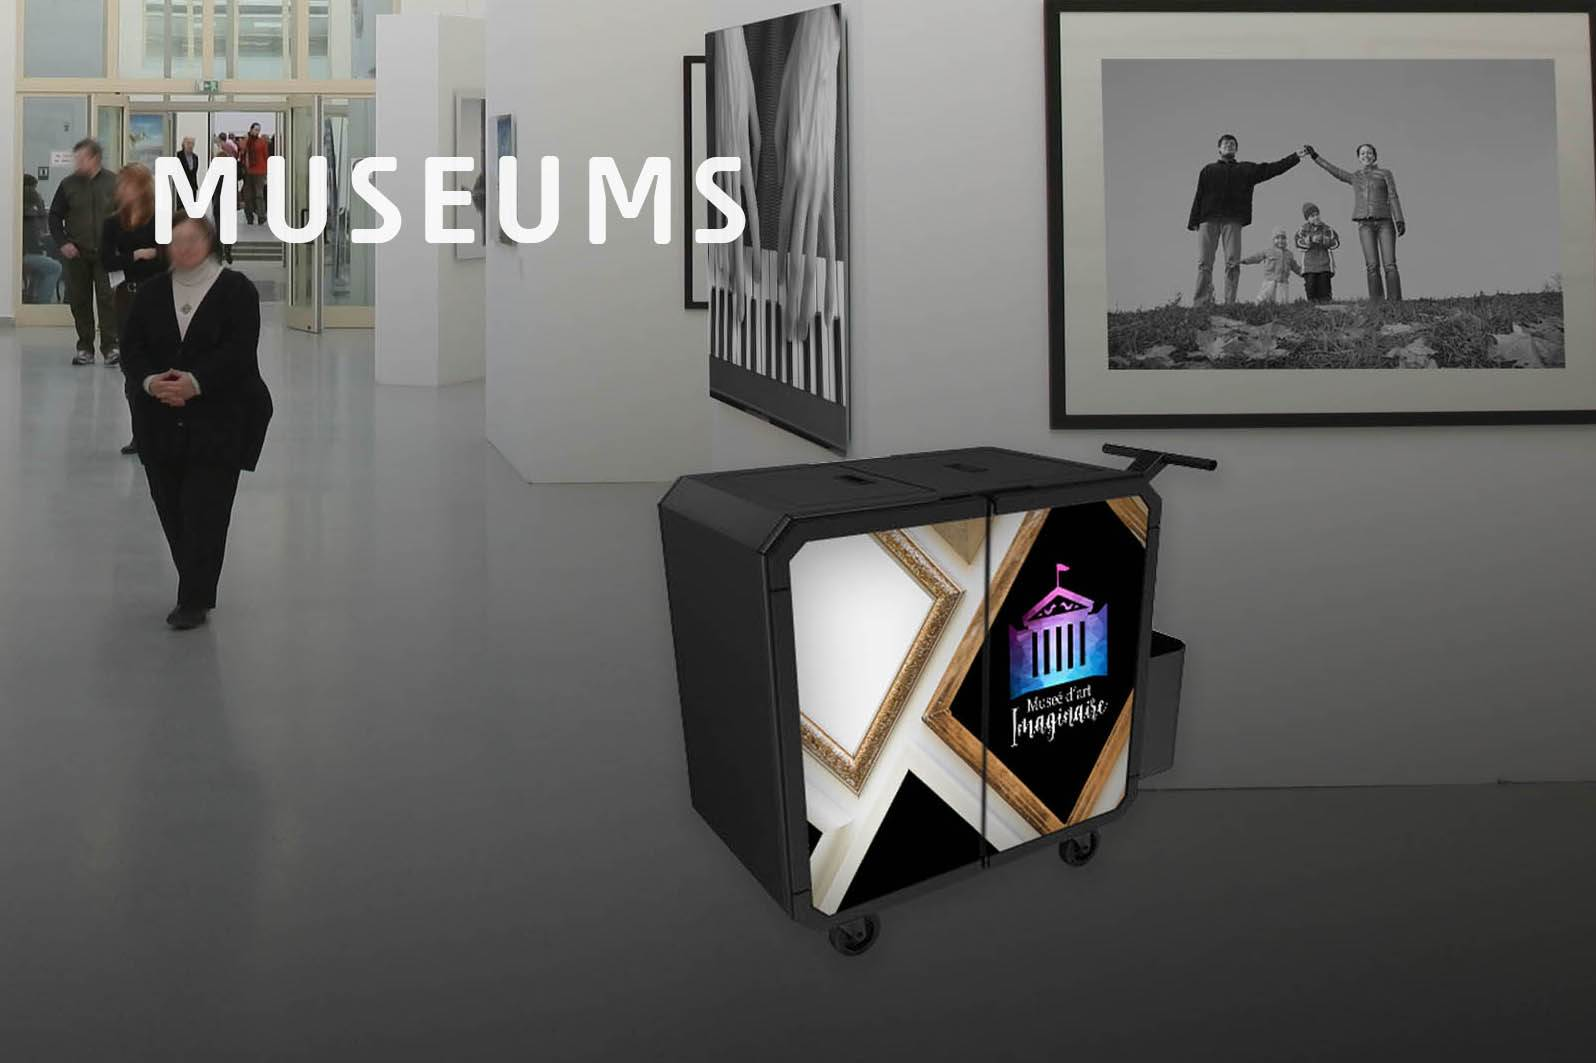 Netsmart professionnal cleaning trolley for museums